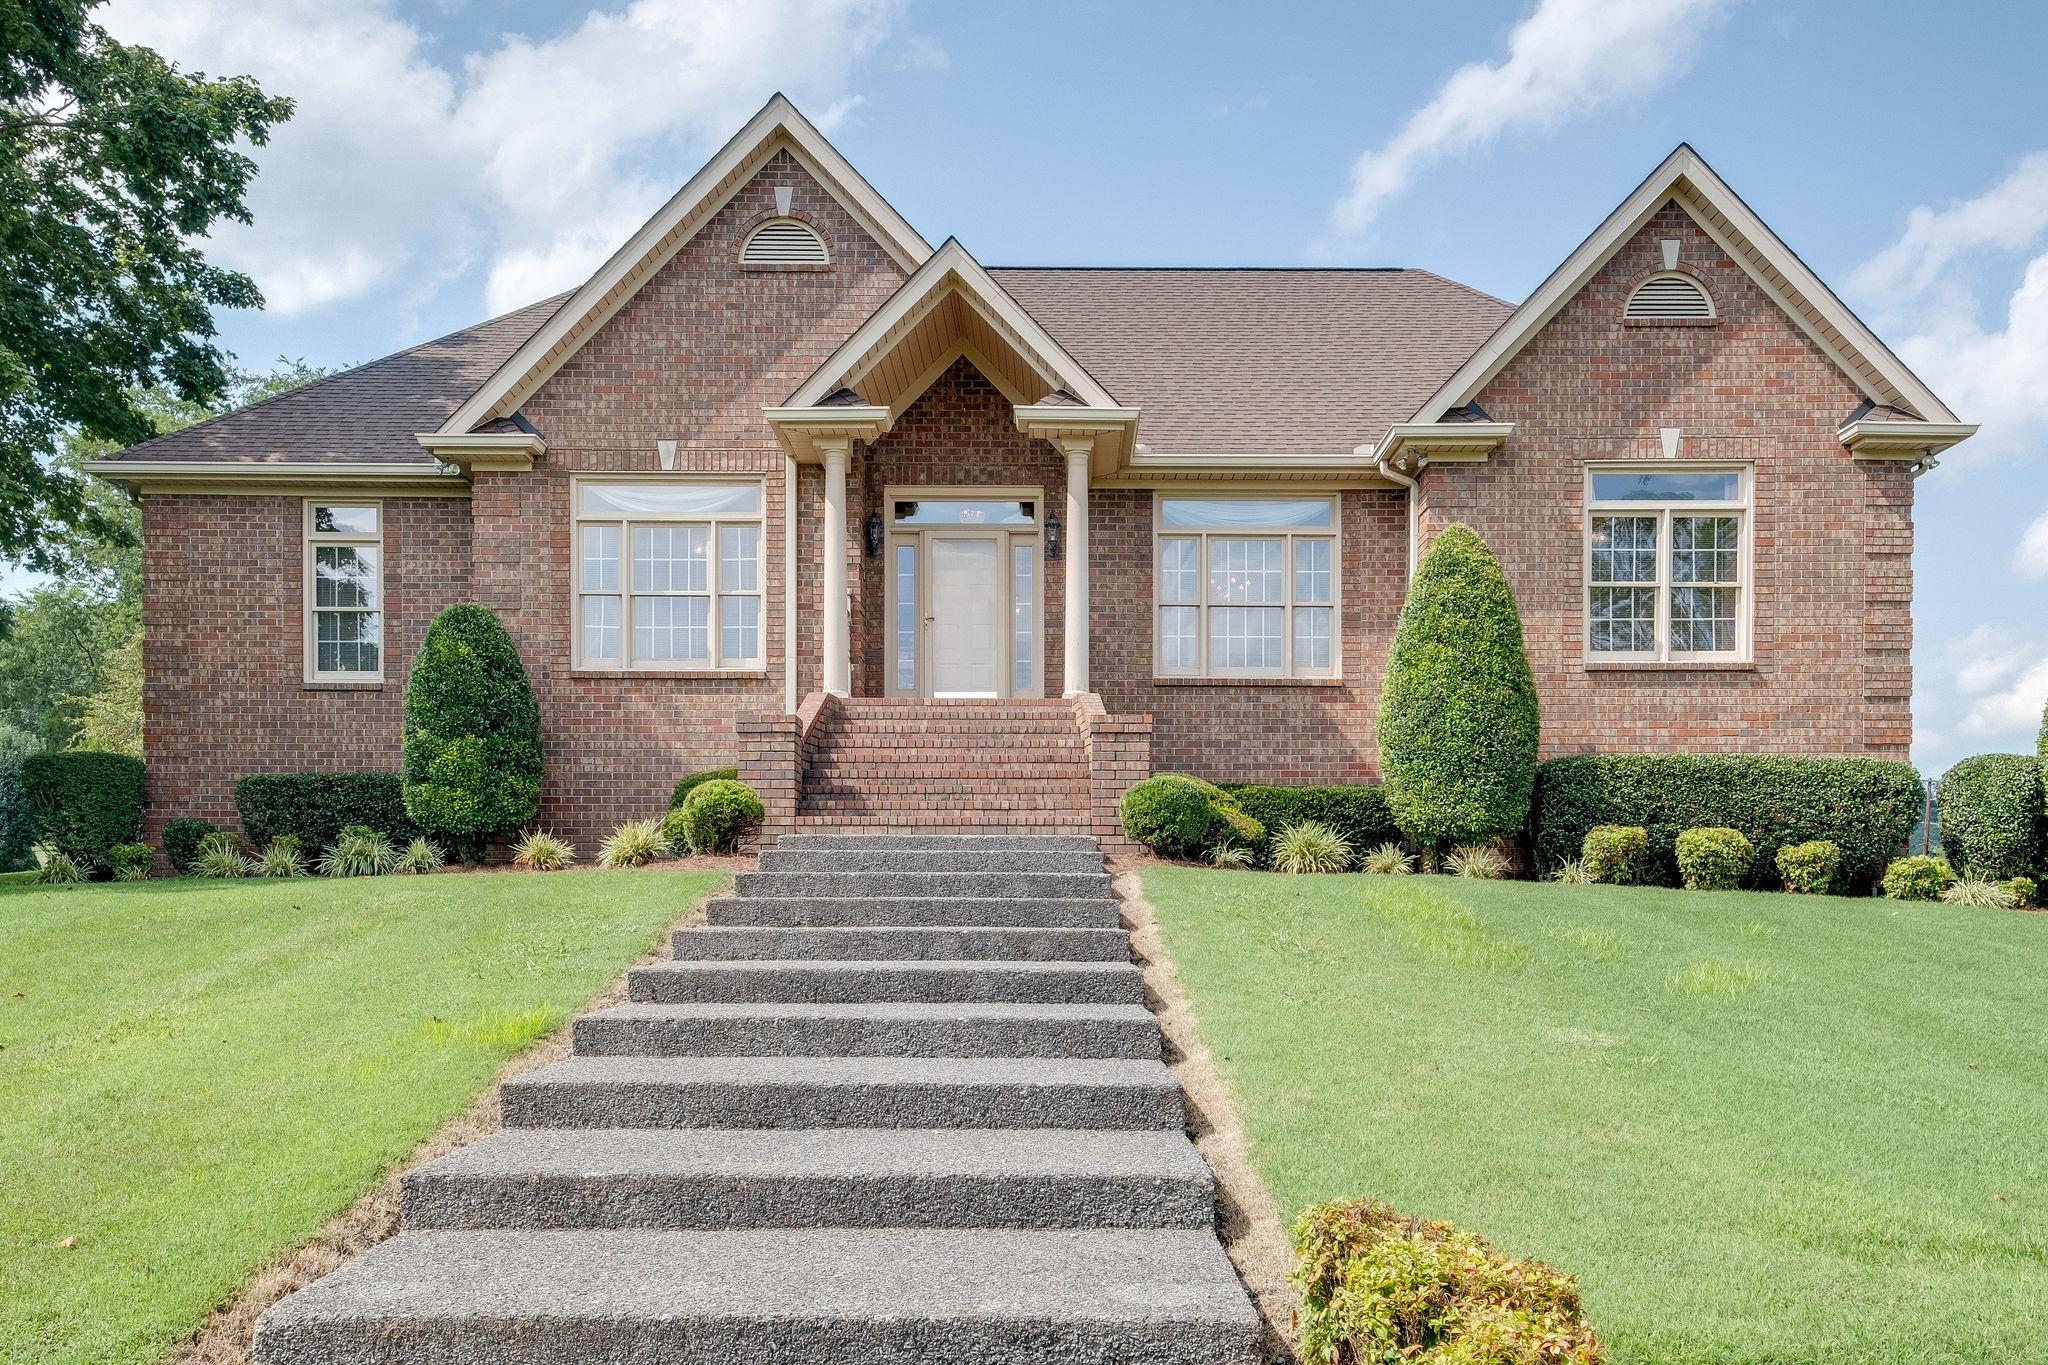 1161 Madison Creek Rd, Goodlettsville, TN 37072 - Goodlettsville, TN real estate listing